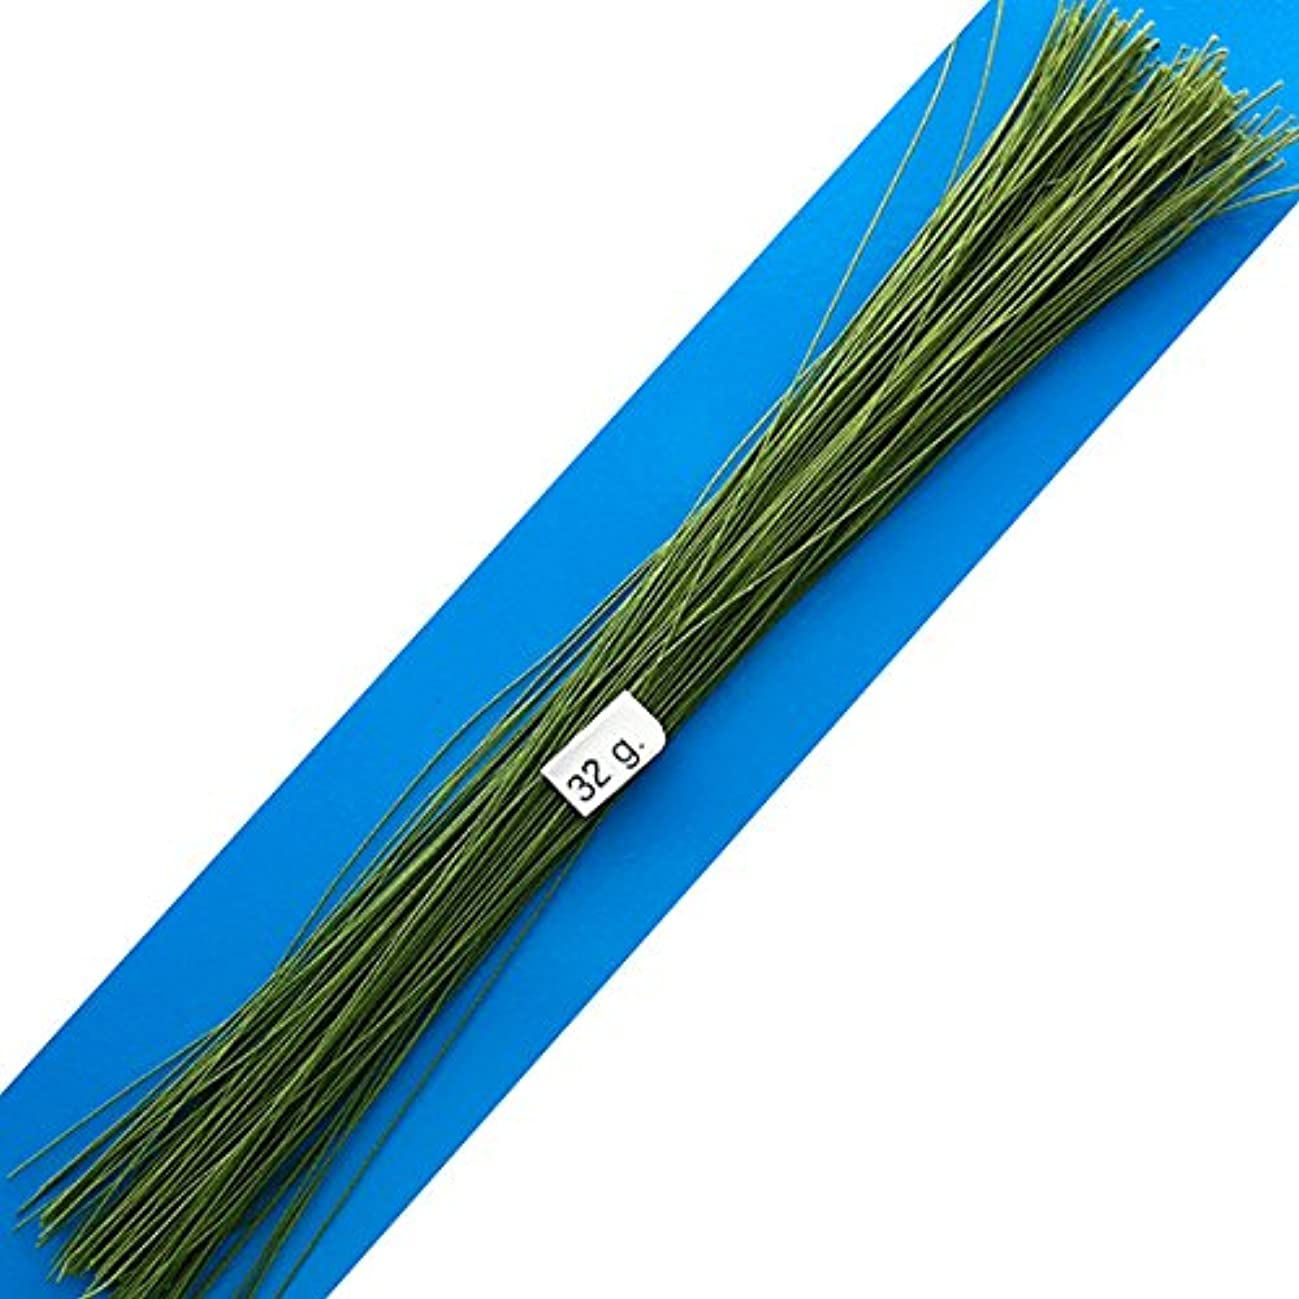 32 Gauge Green Cotton Covered Floral Wire - 130 feet per Bundle (39.6m) in 12 inch (30.5cm) Lengths